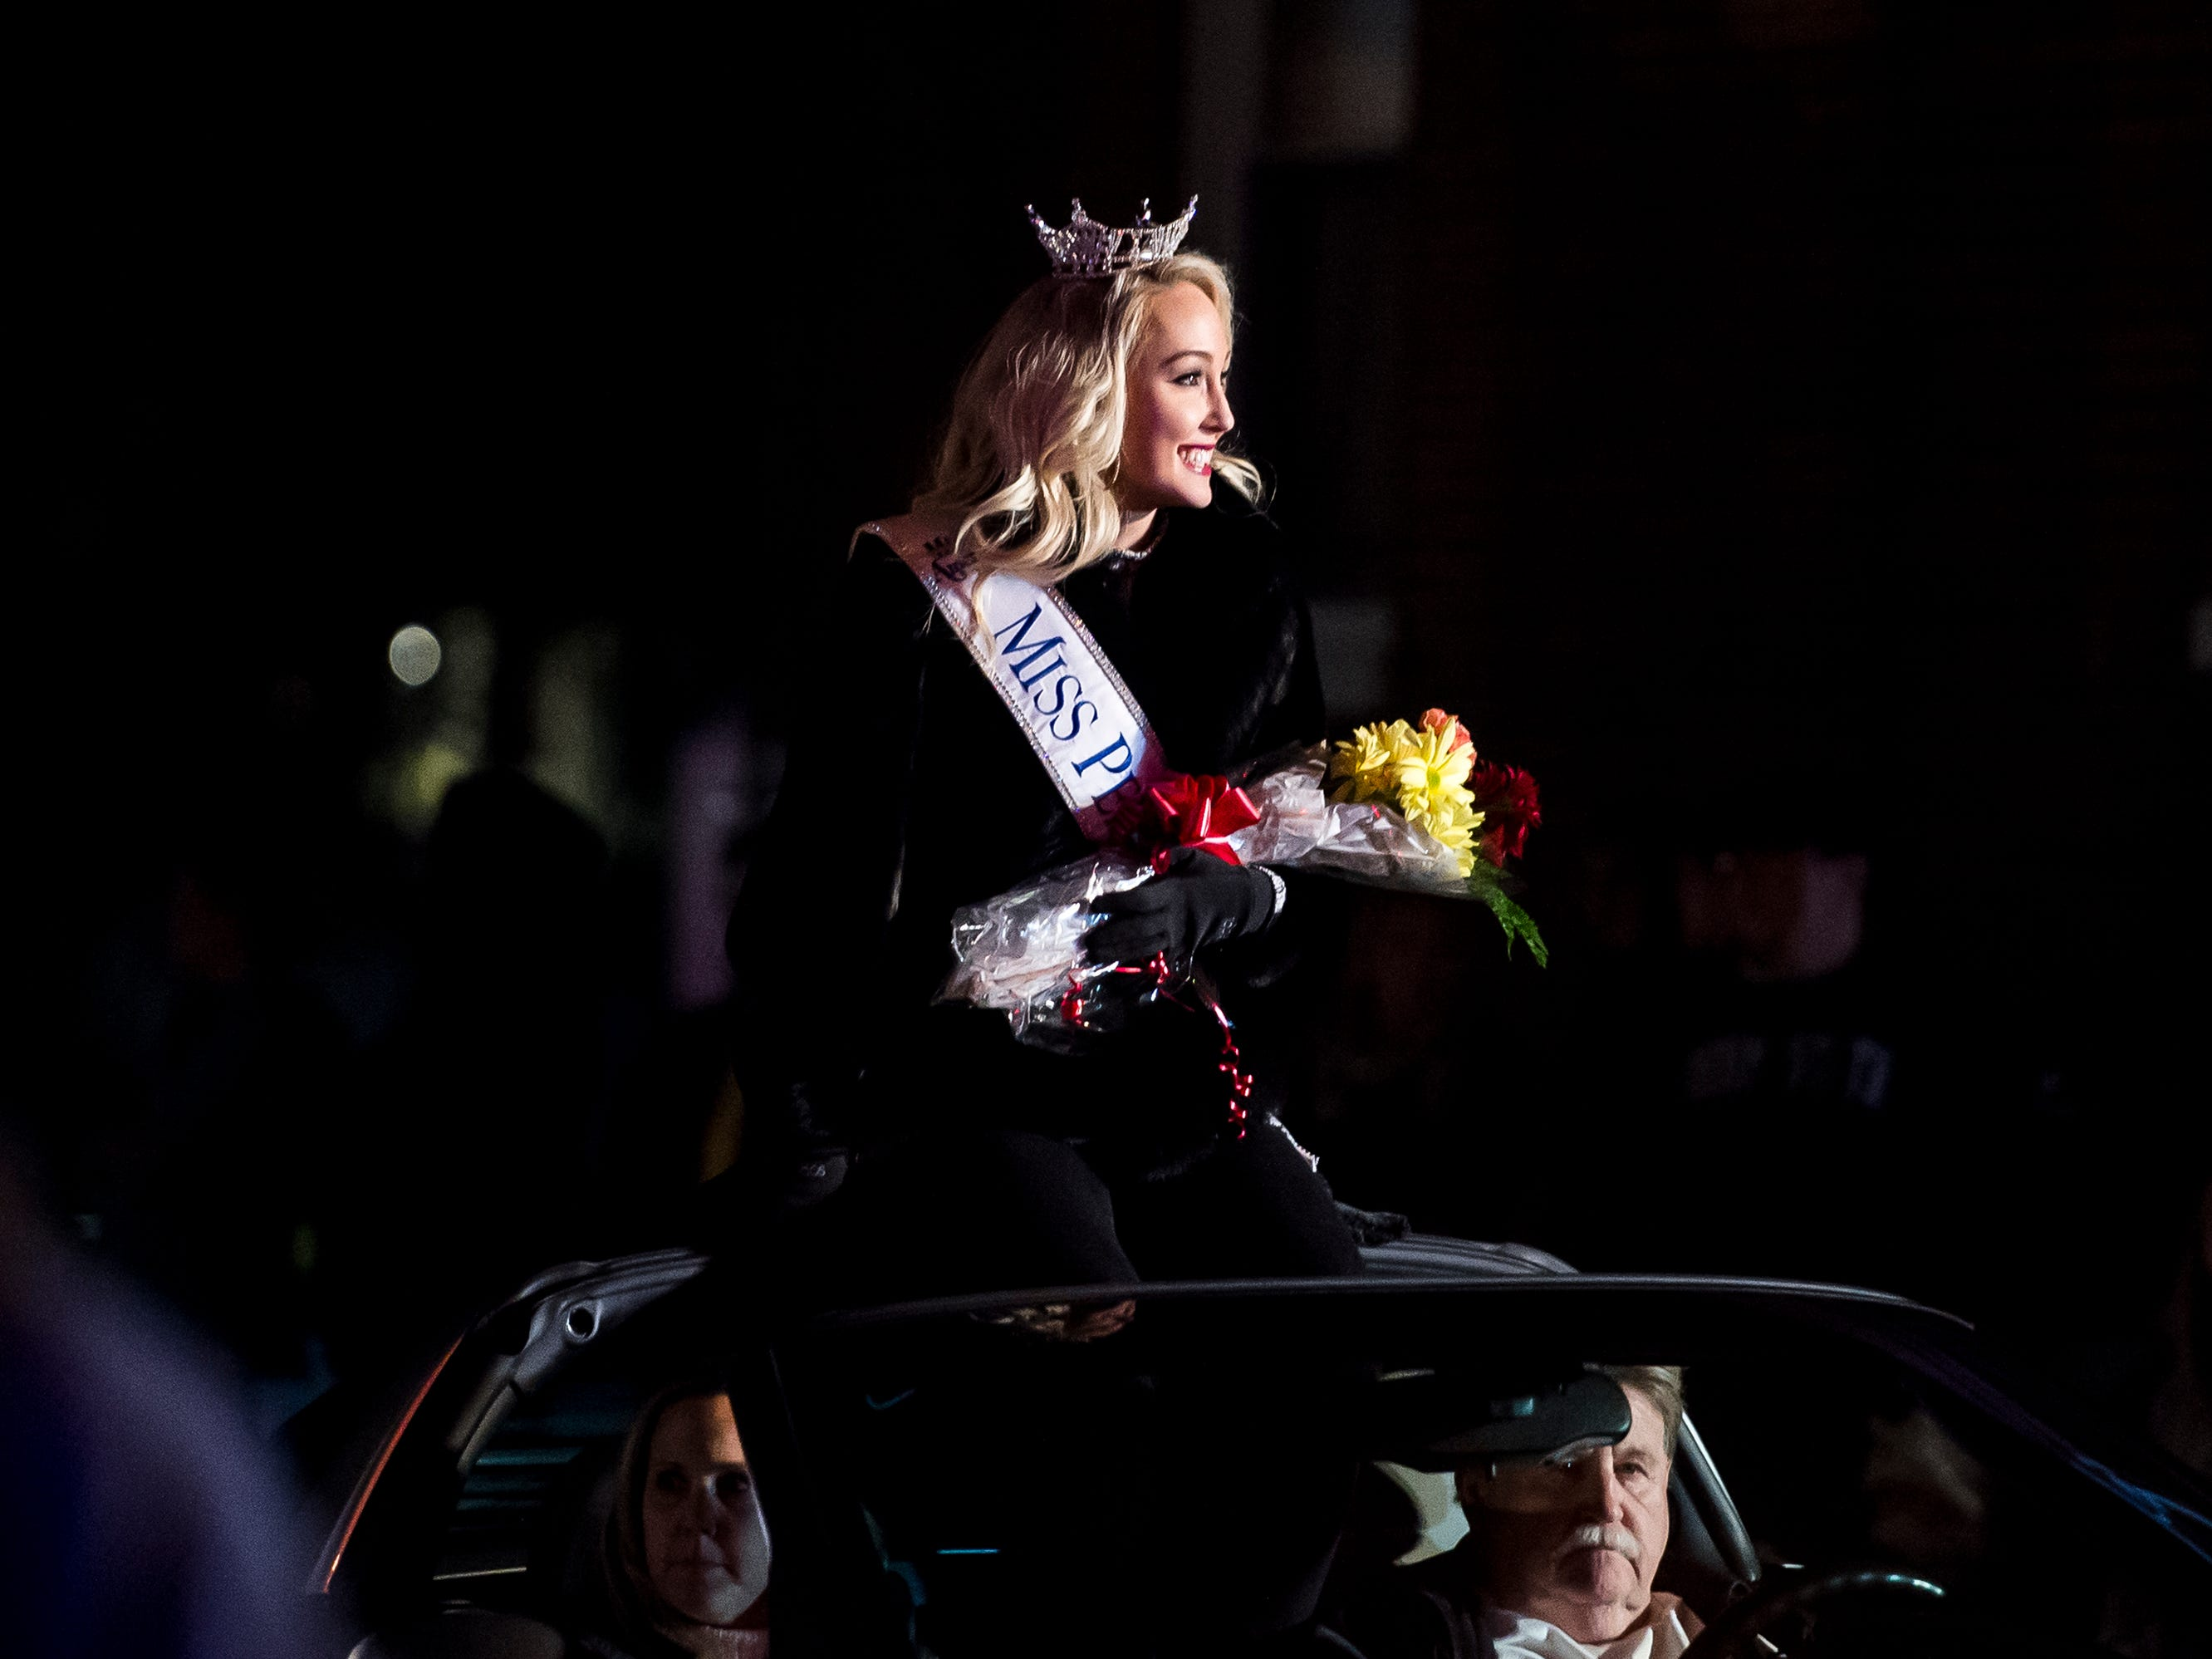 Miss Pennsylvania, Kayla Repasky, sits in the back of a vehicle during the 77th annual Hanover Halloween parade on Thursday, October 25, 2018.